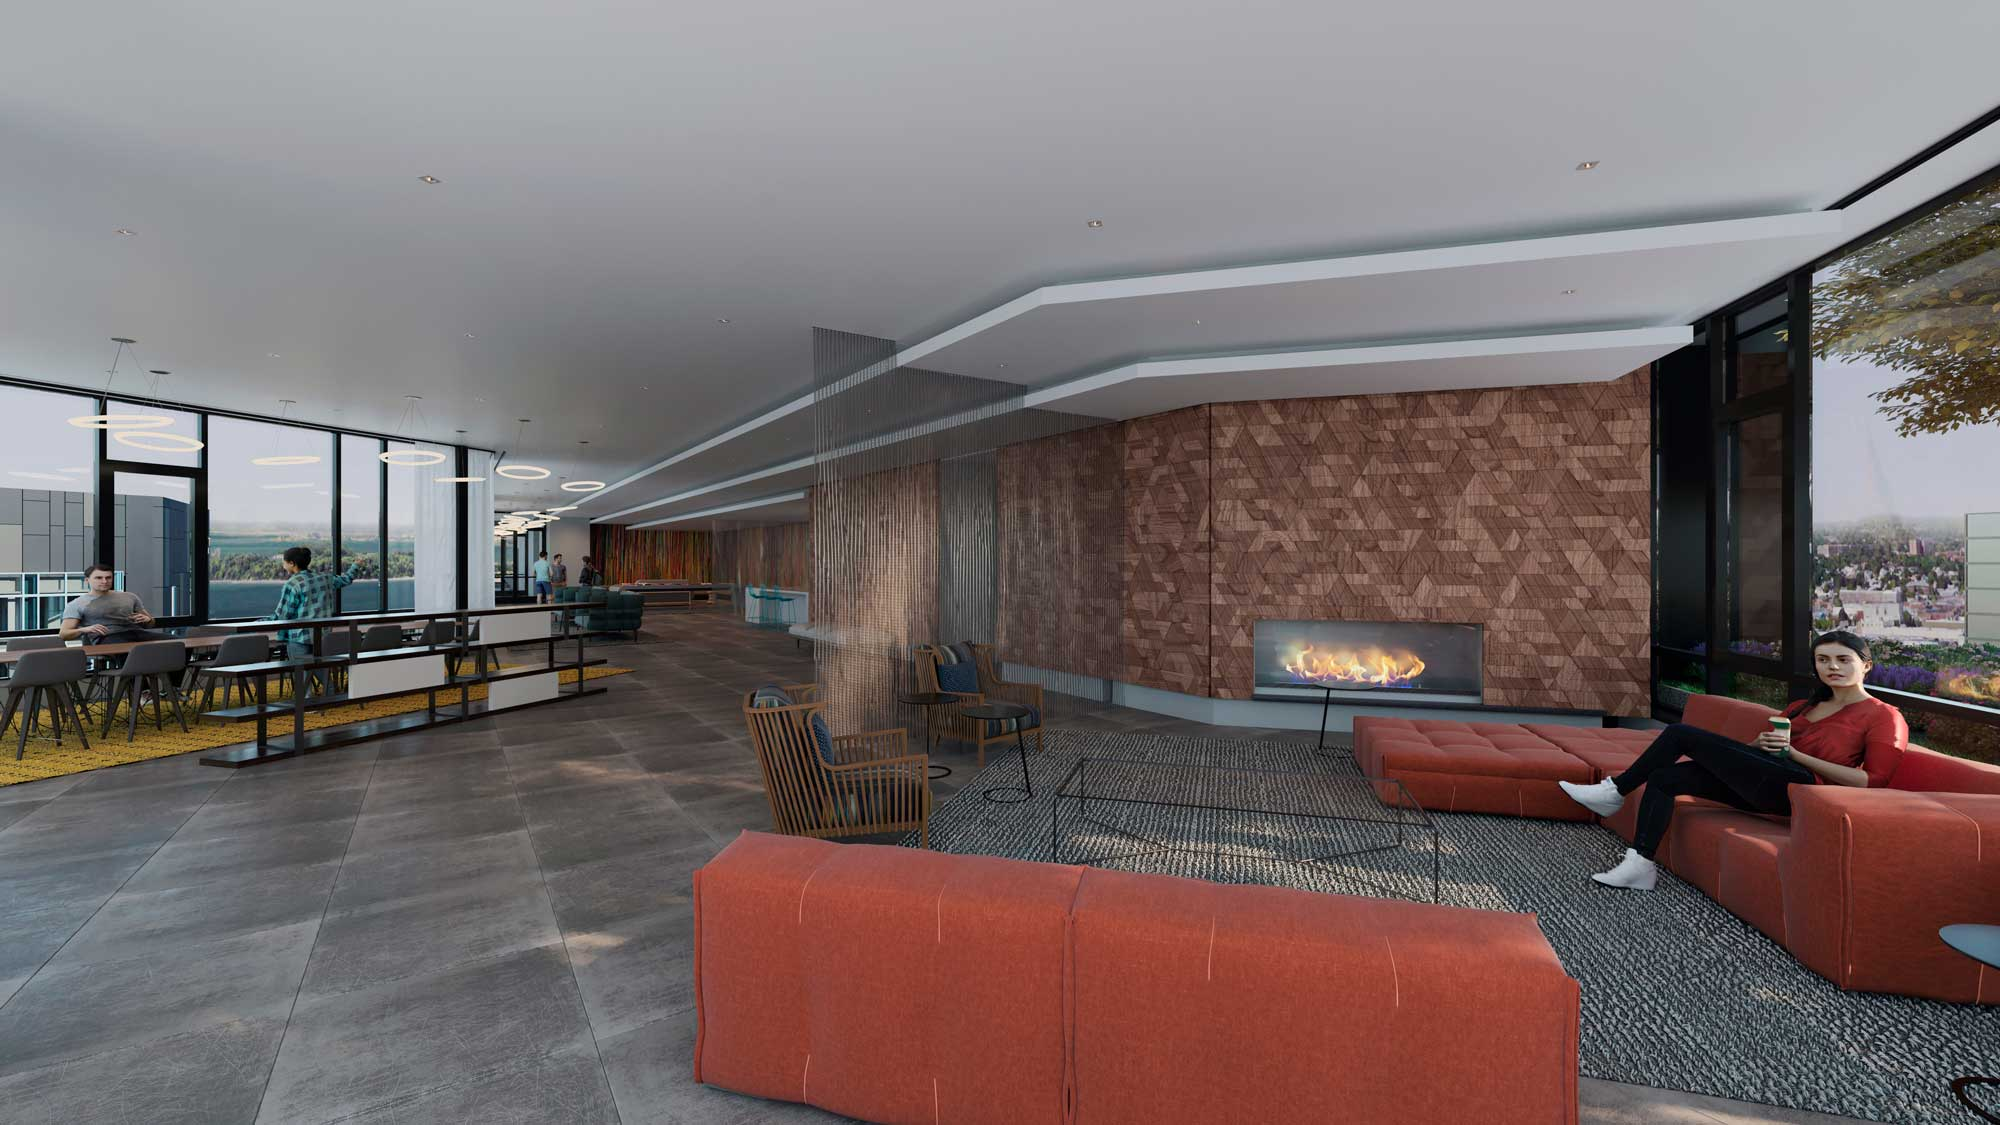 Common area with warm tones and a fireplace